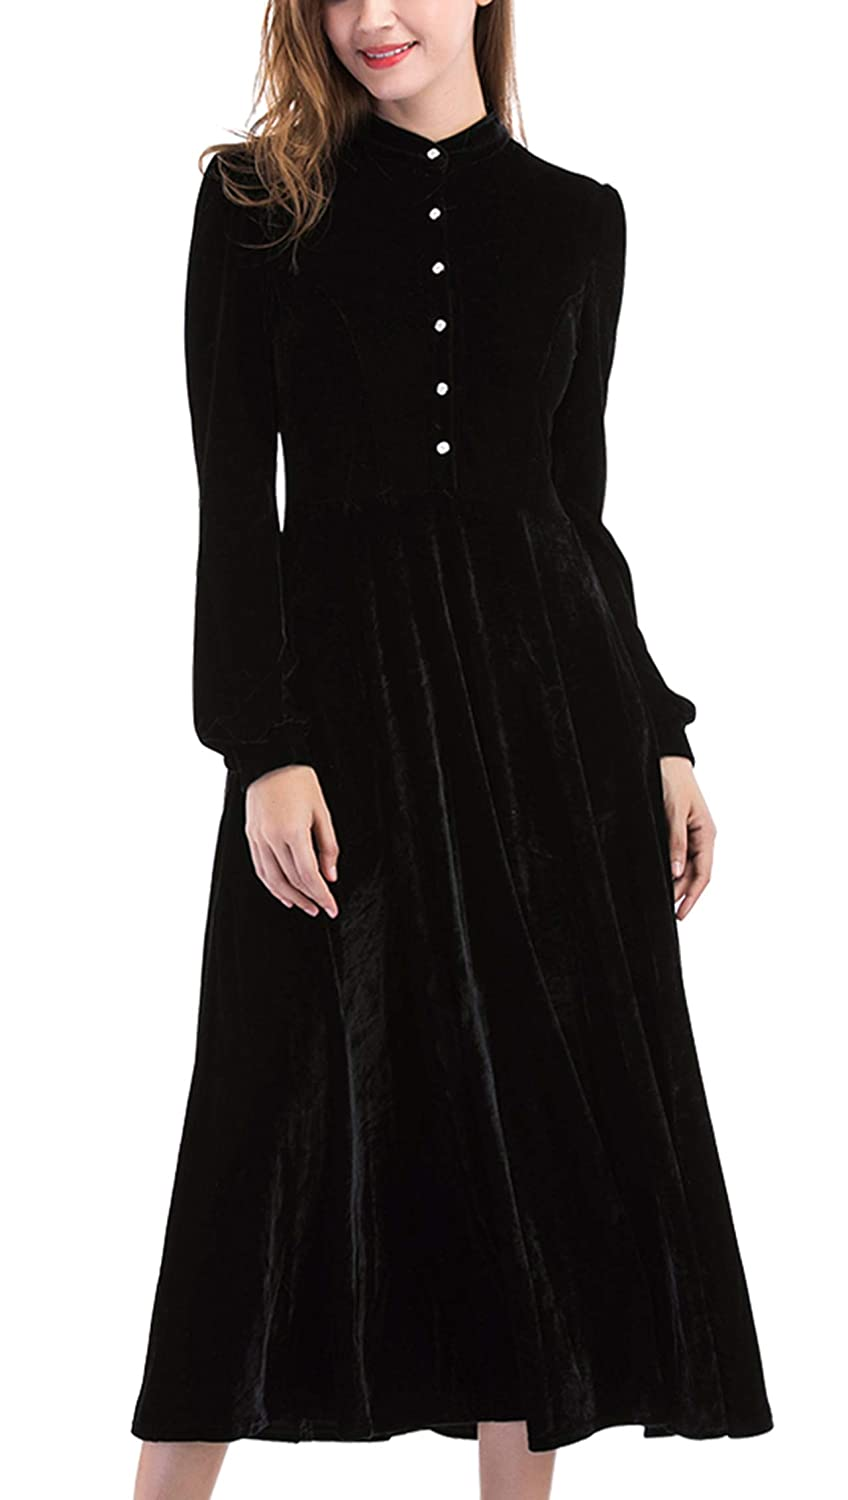 1930s Dresses | 30s Art Deco Dress Ayliss Women Velvet Maxi Dress Peter Pan Collar Long Sleeve Swing Dress $29.99 AT vintagedancer.com